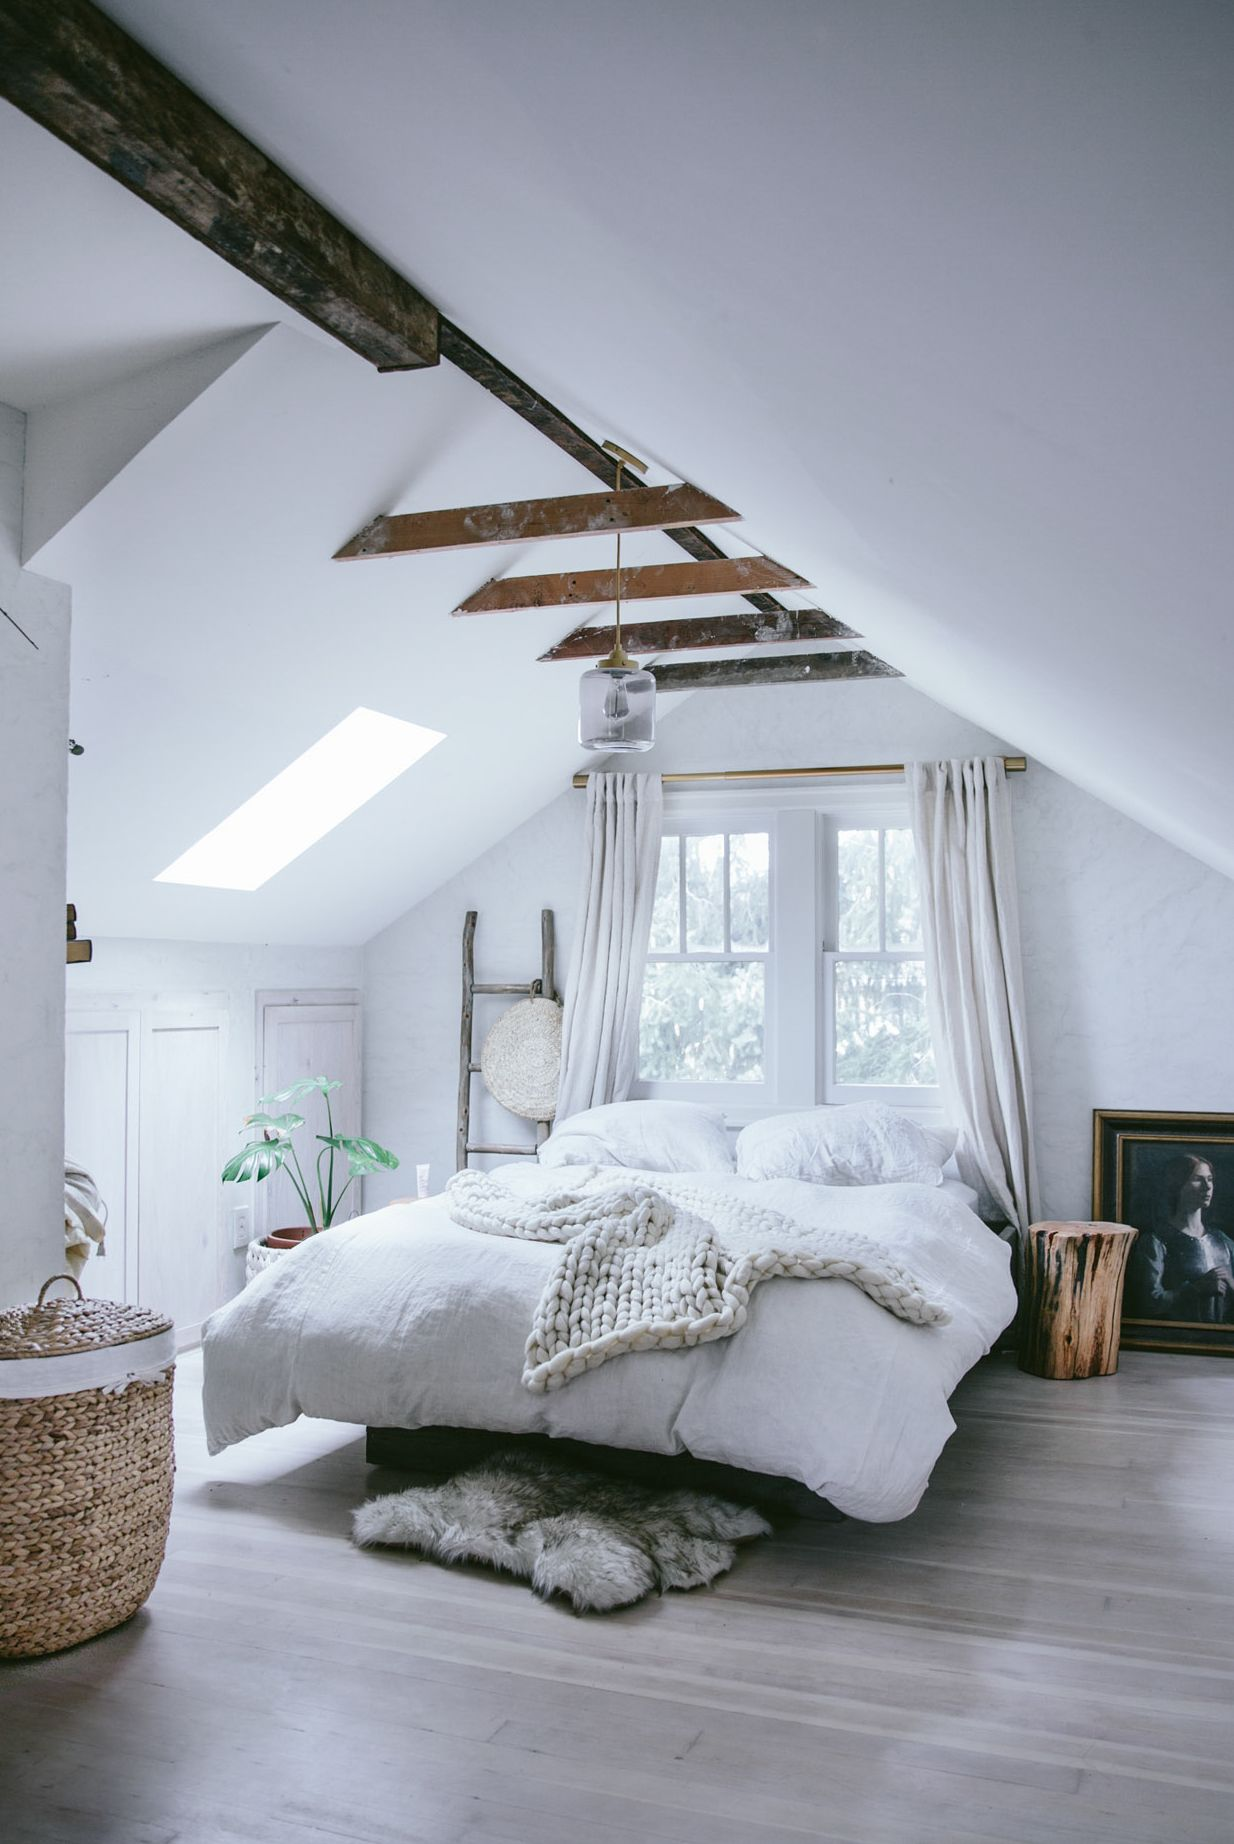 Attic bedroom home pinterest attic bedrooms attic and bedrooms